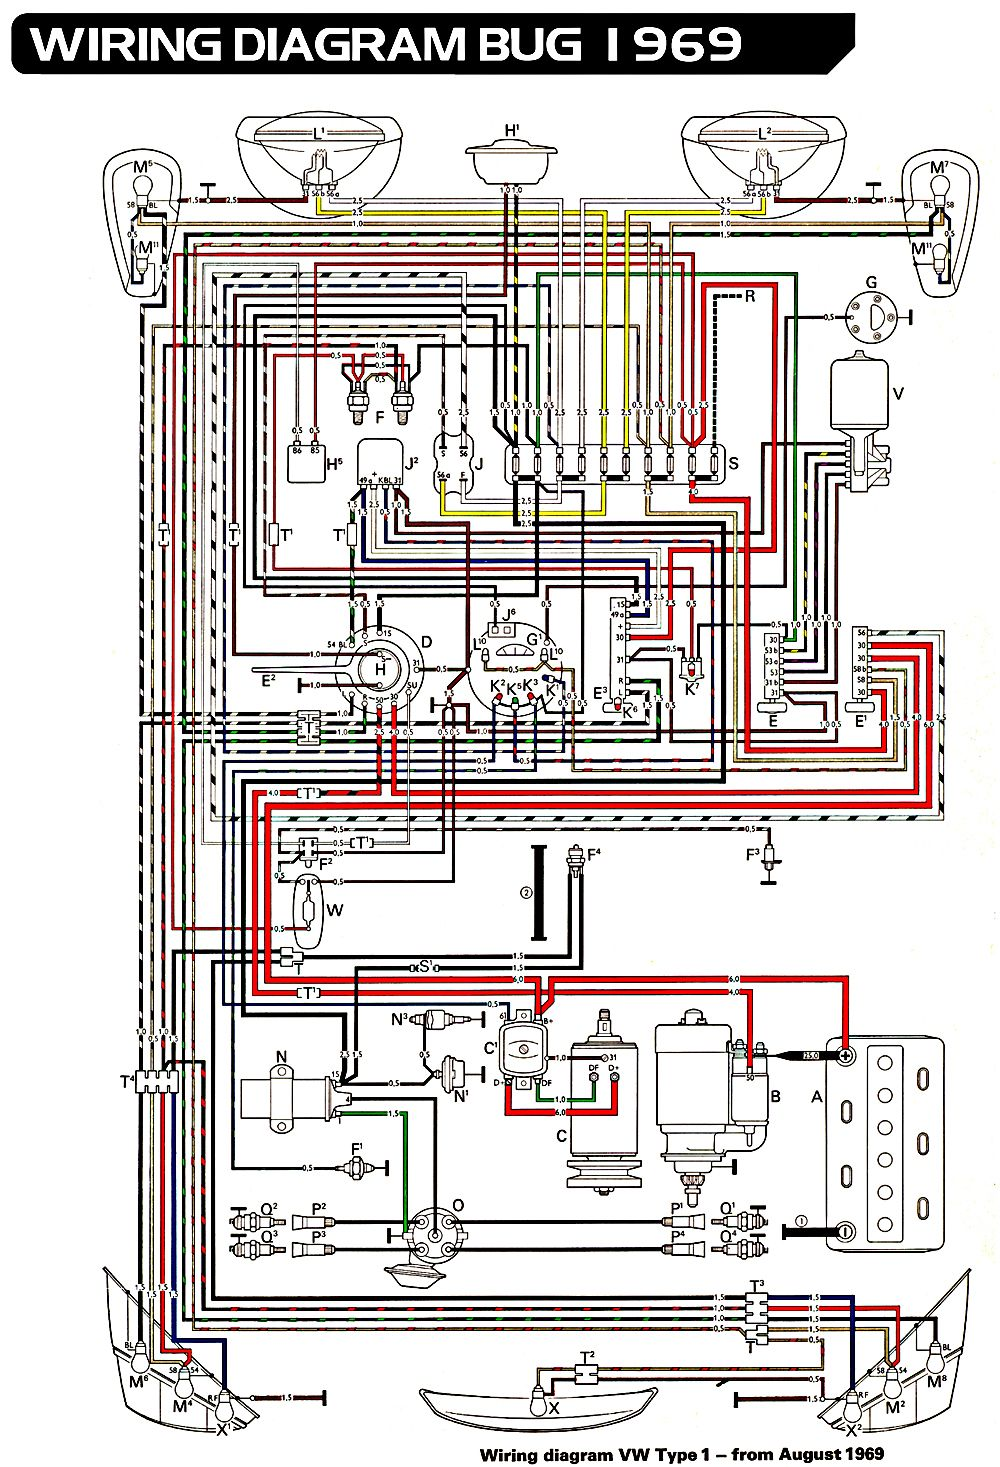 6d75c15875479254f26a32a8499d9044 69 vw bug wiring diagram 1970 vw beetle wiring \u2022 wiring diagrams 1955 plymouth wiring diagram at nearapp.co